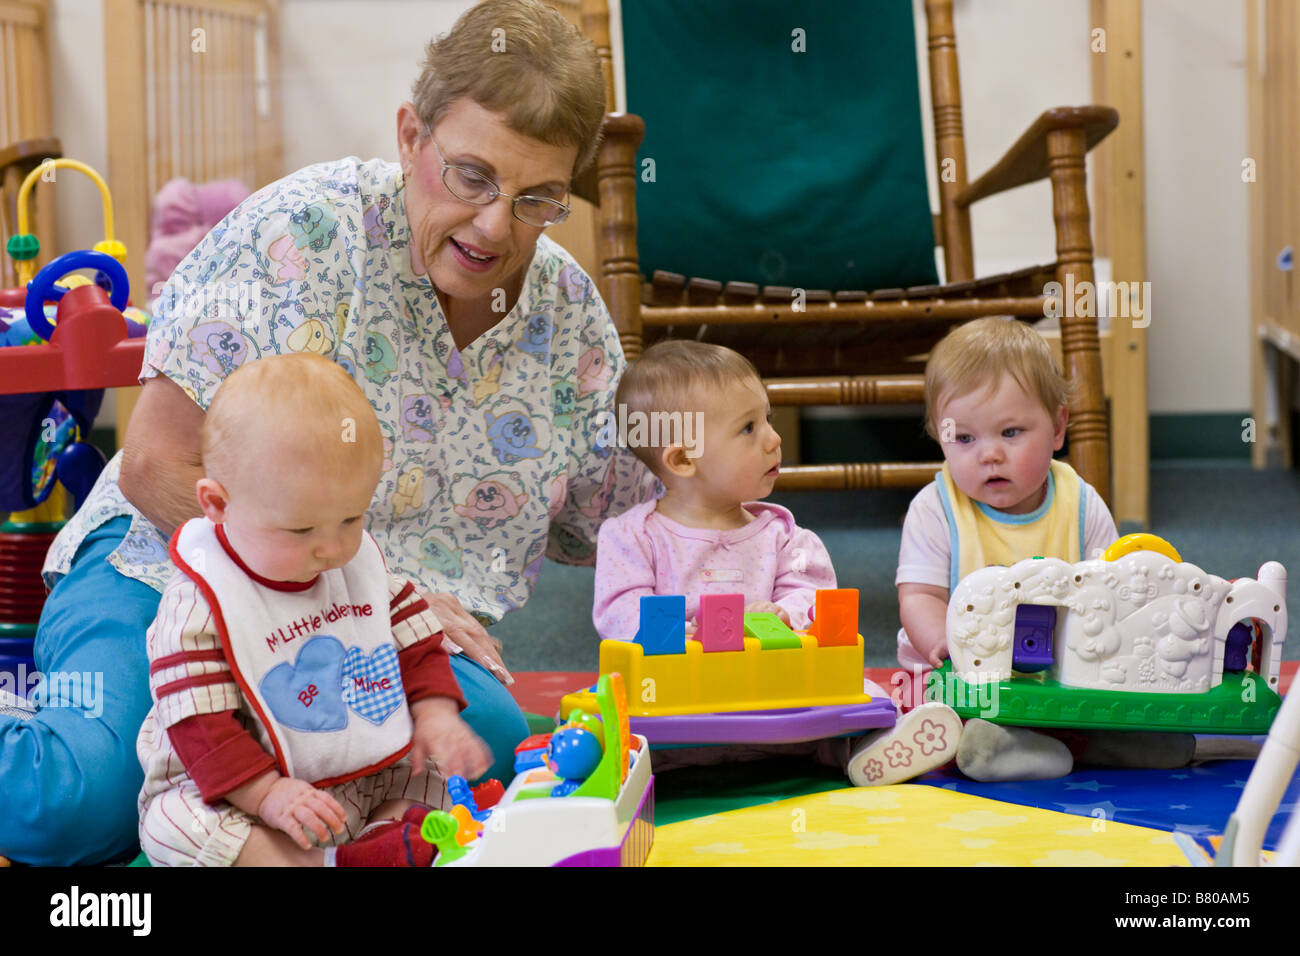 Day Care Toys : Senior preschool daycare worker using bright colored toys